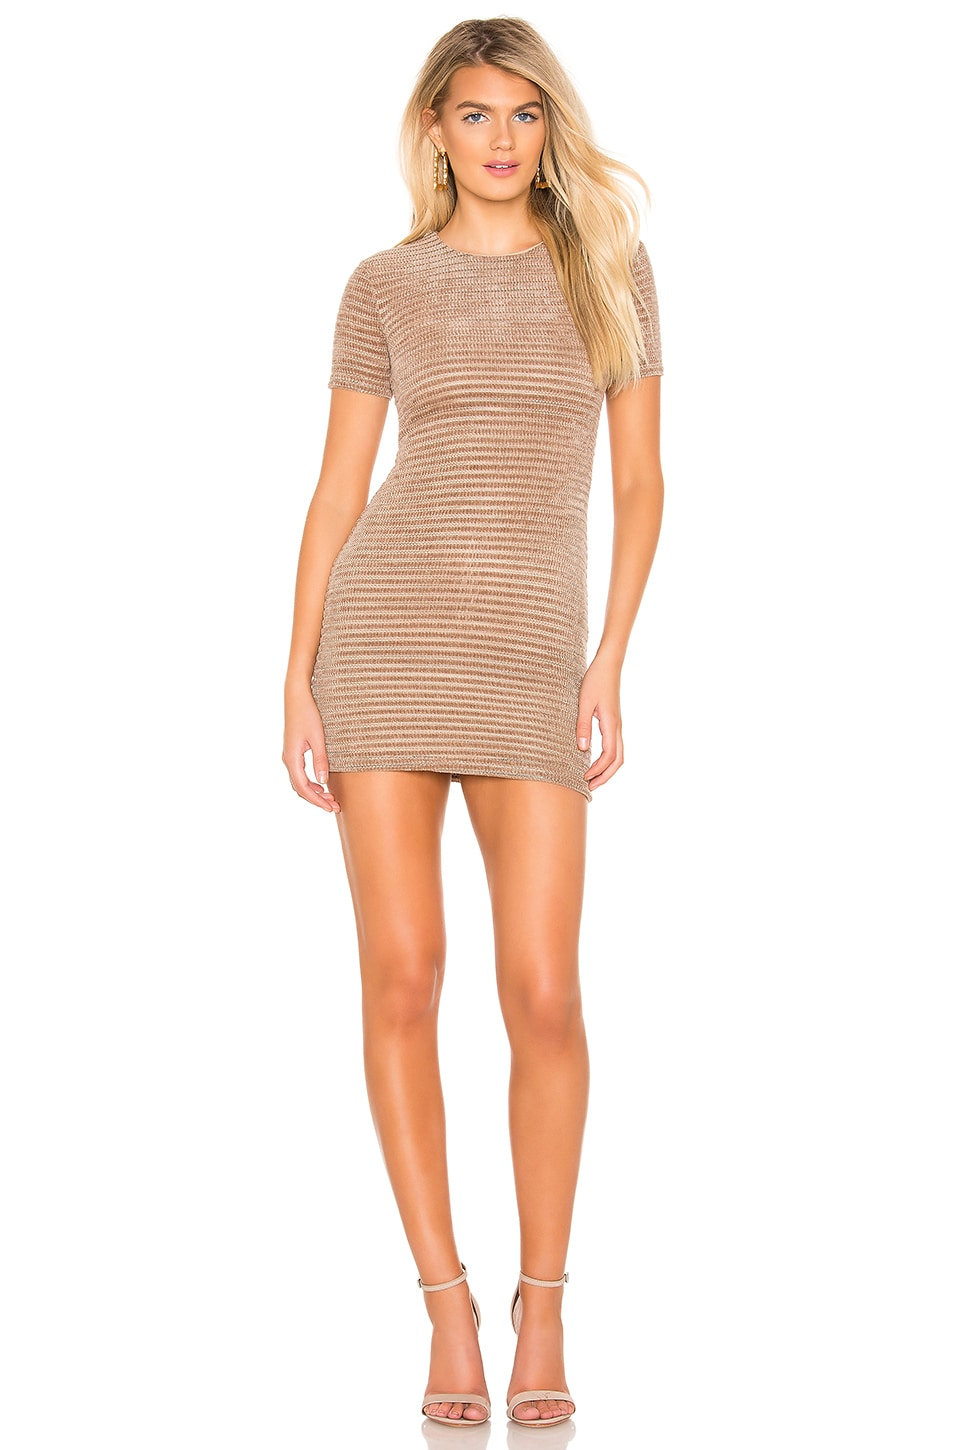 Privacy Please Adele Mini Dress in Hazelnut